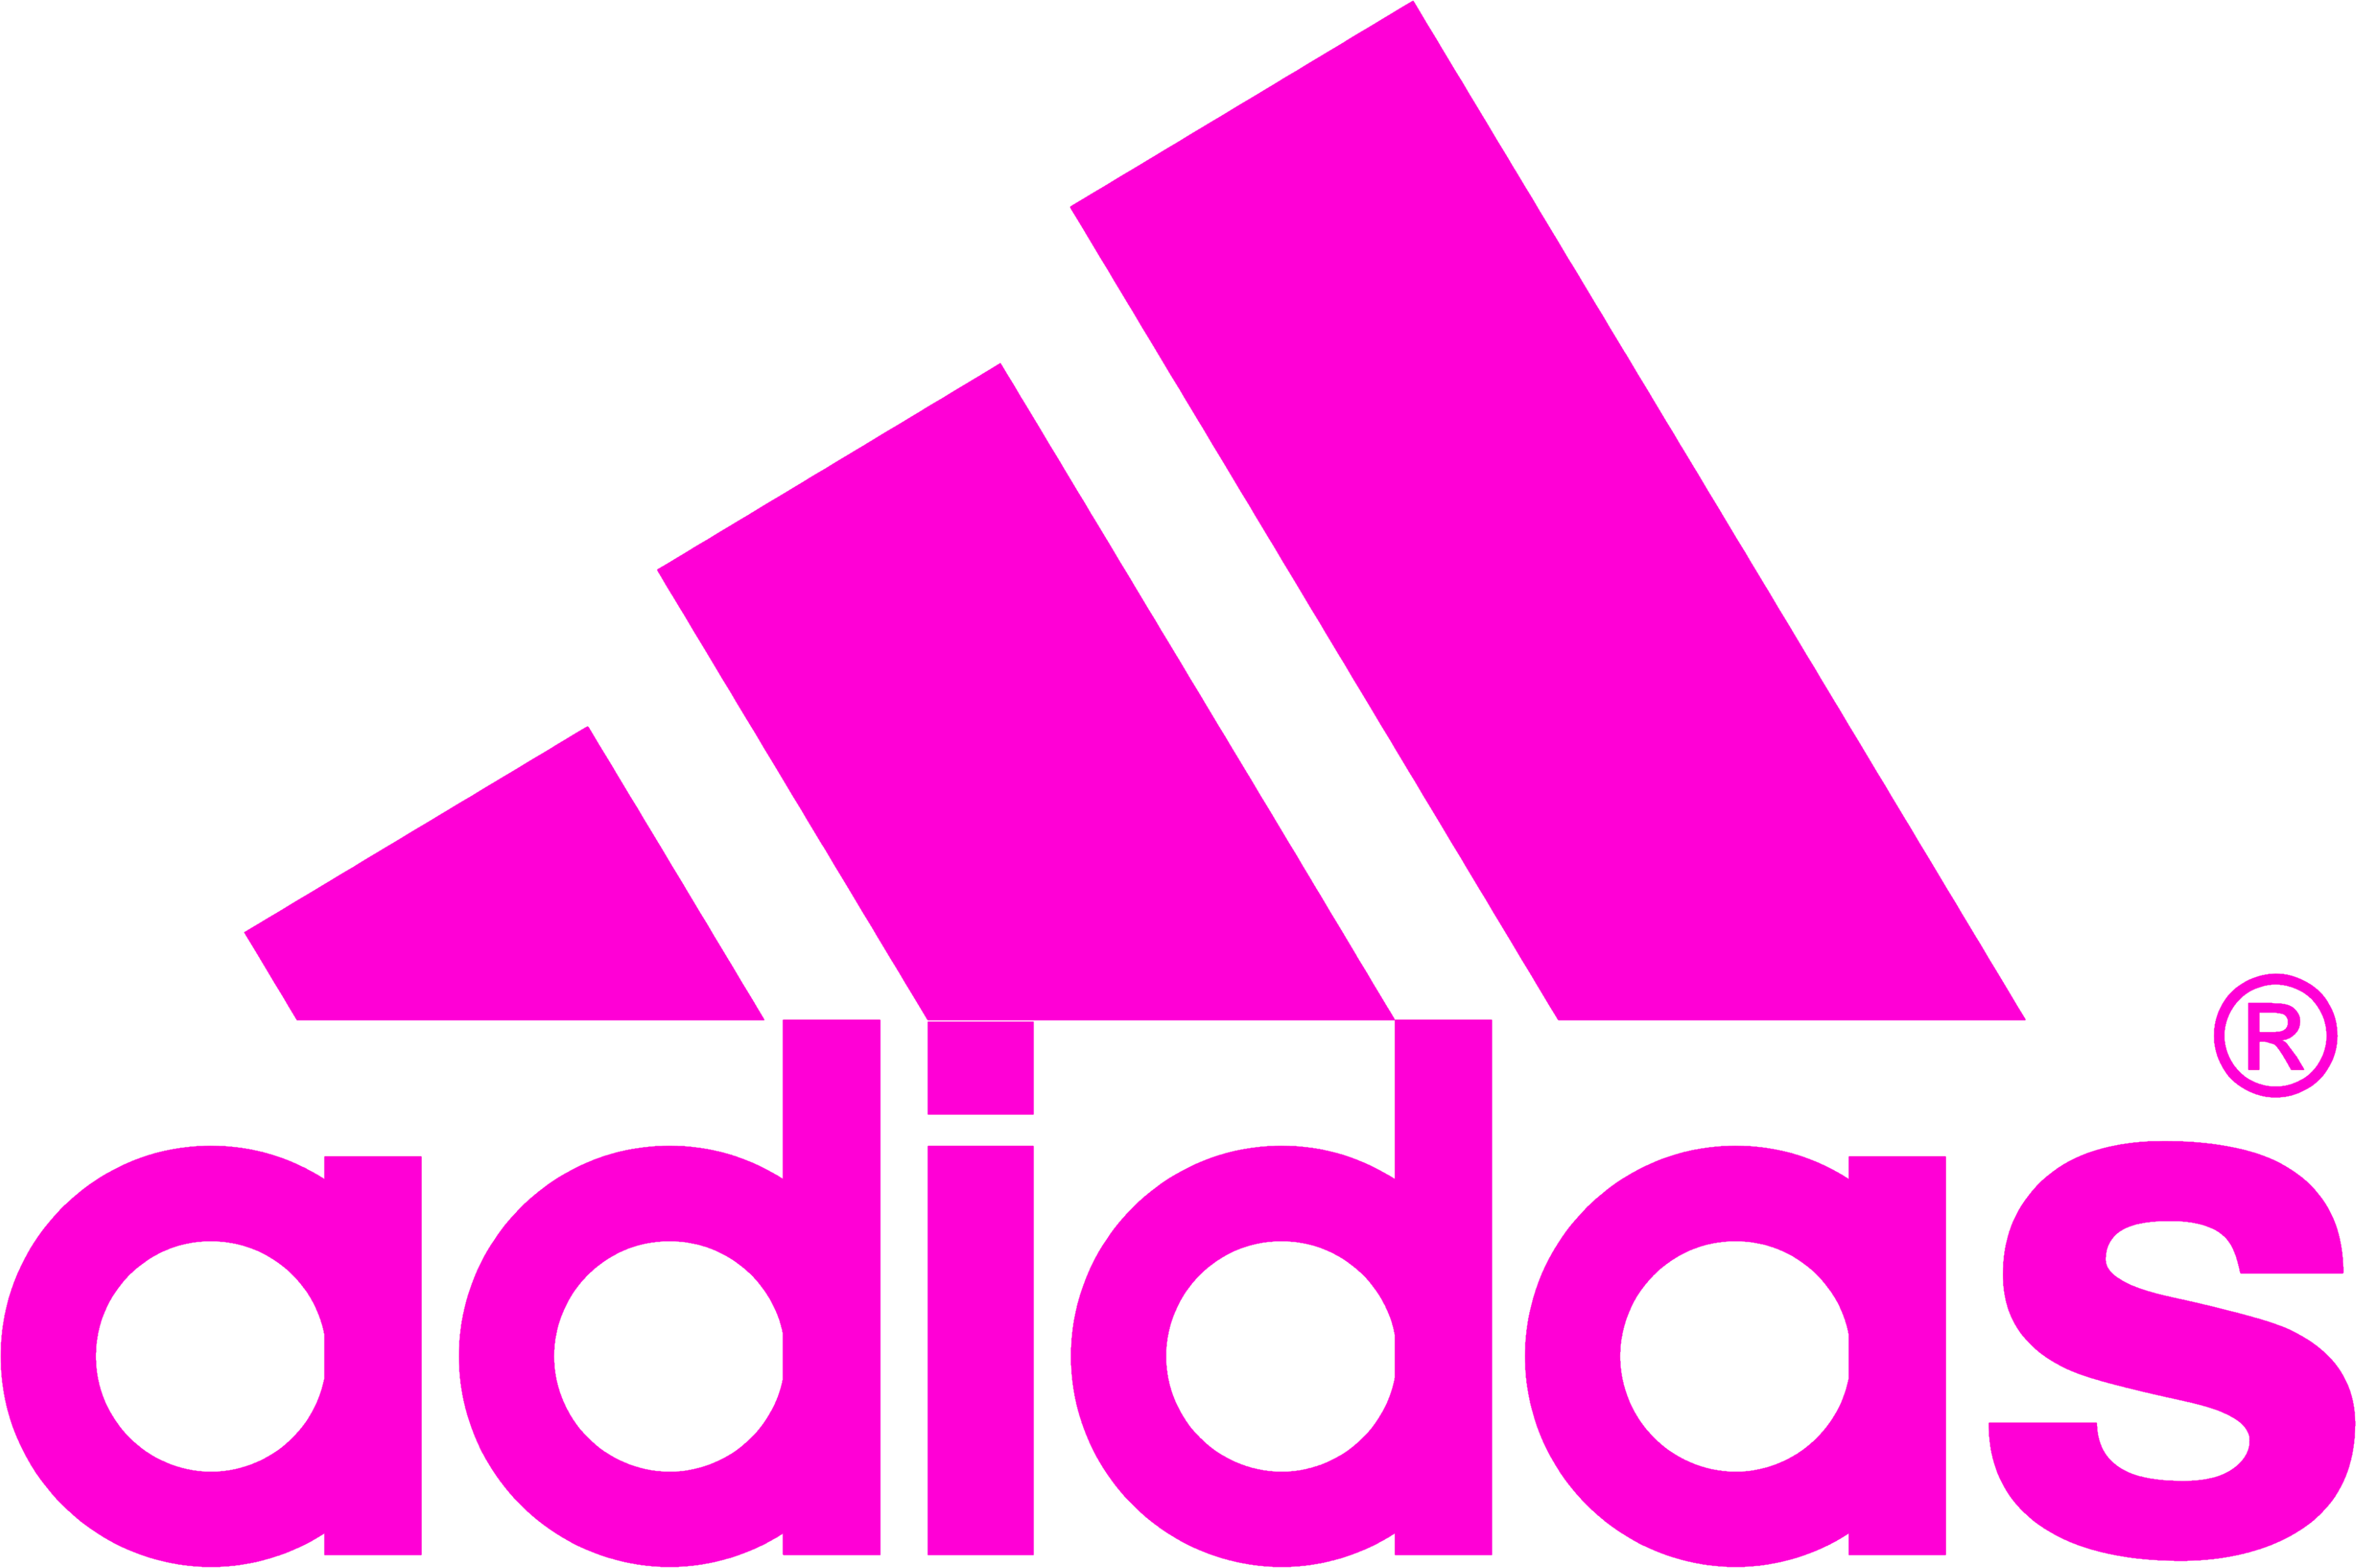 Free download of Adidas PNG Image Without Background